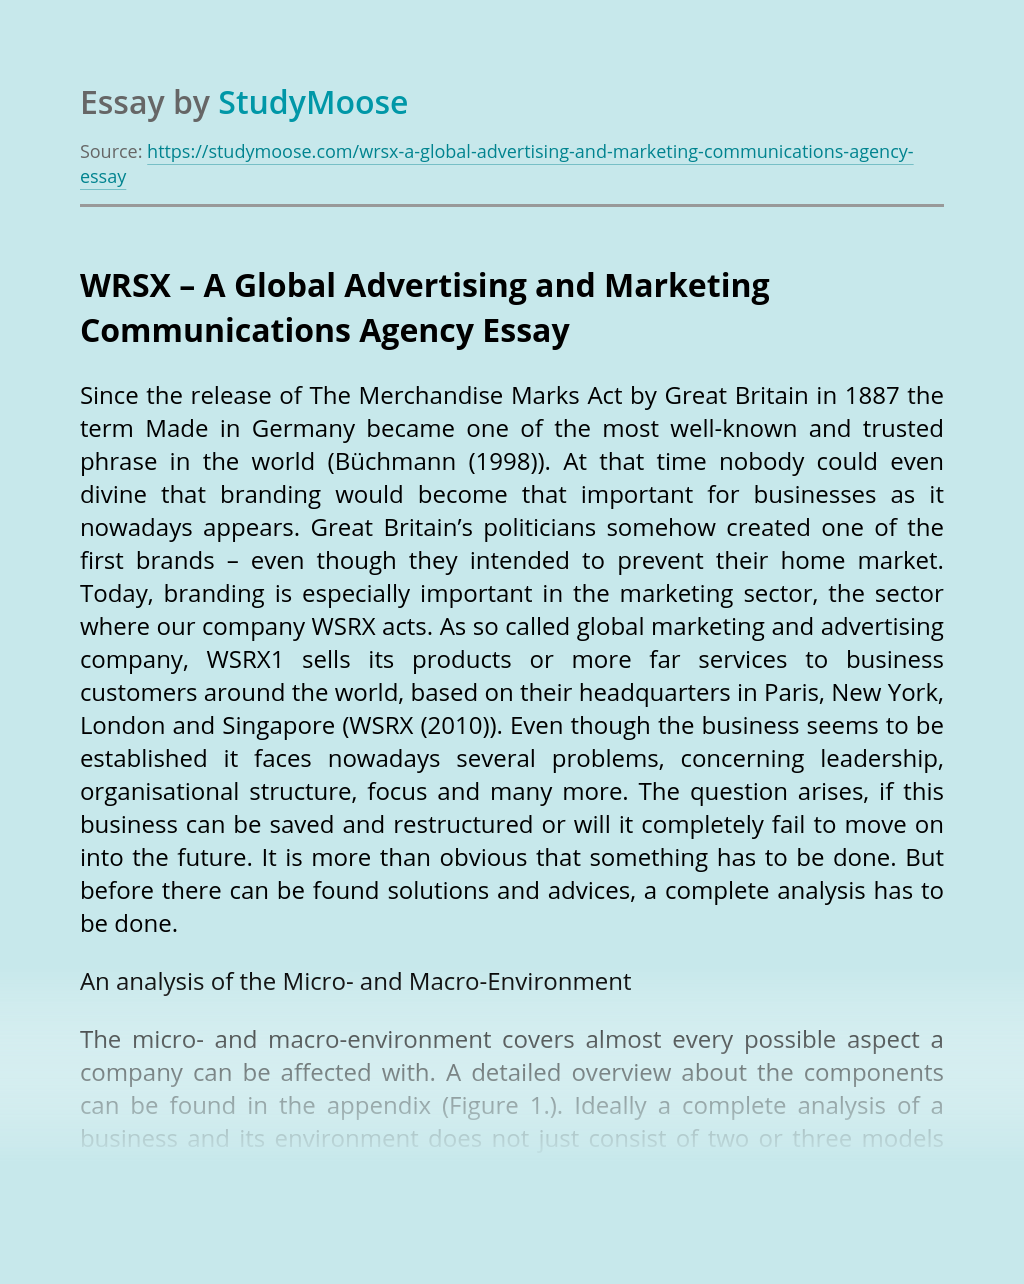 WRSX – A Global Advertising and Marketing Communications Agency